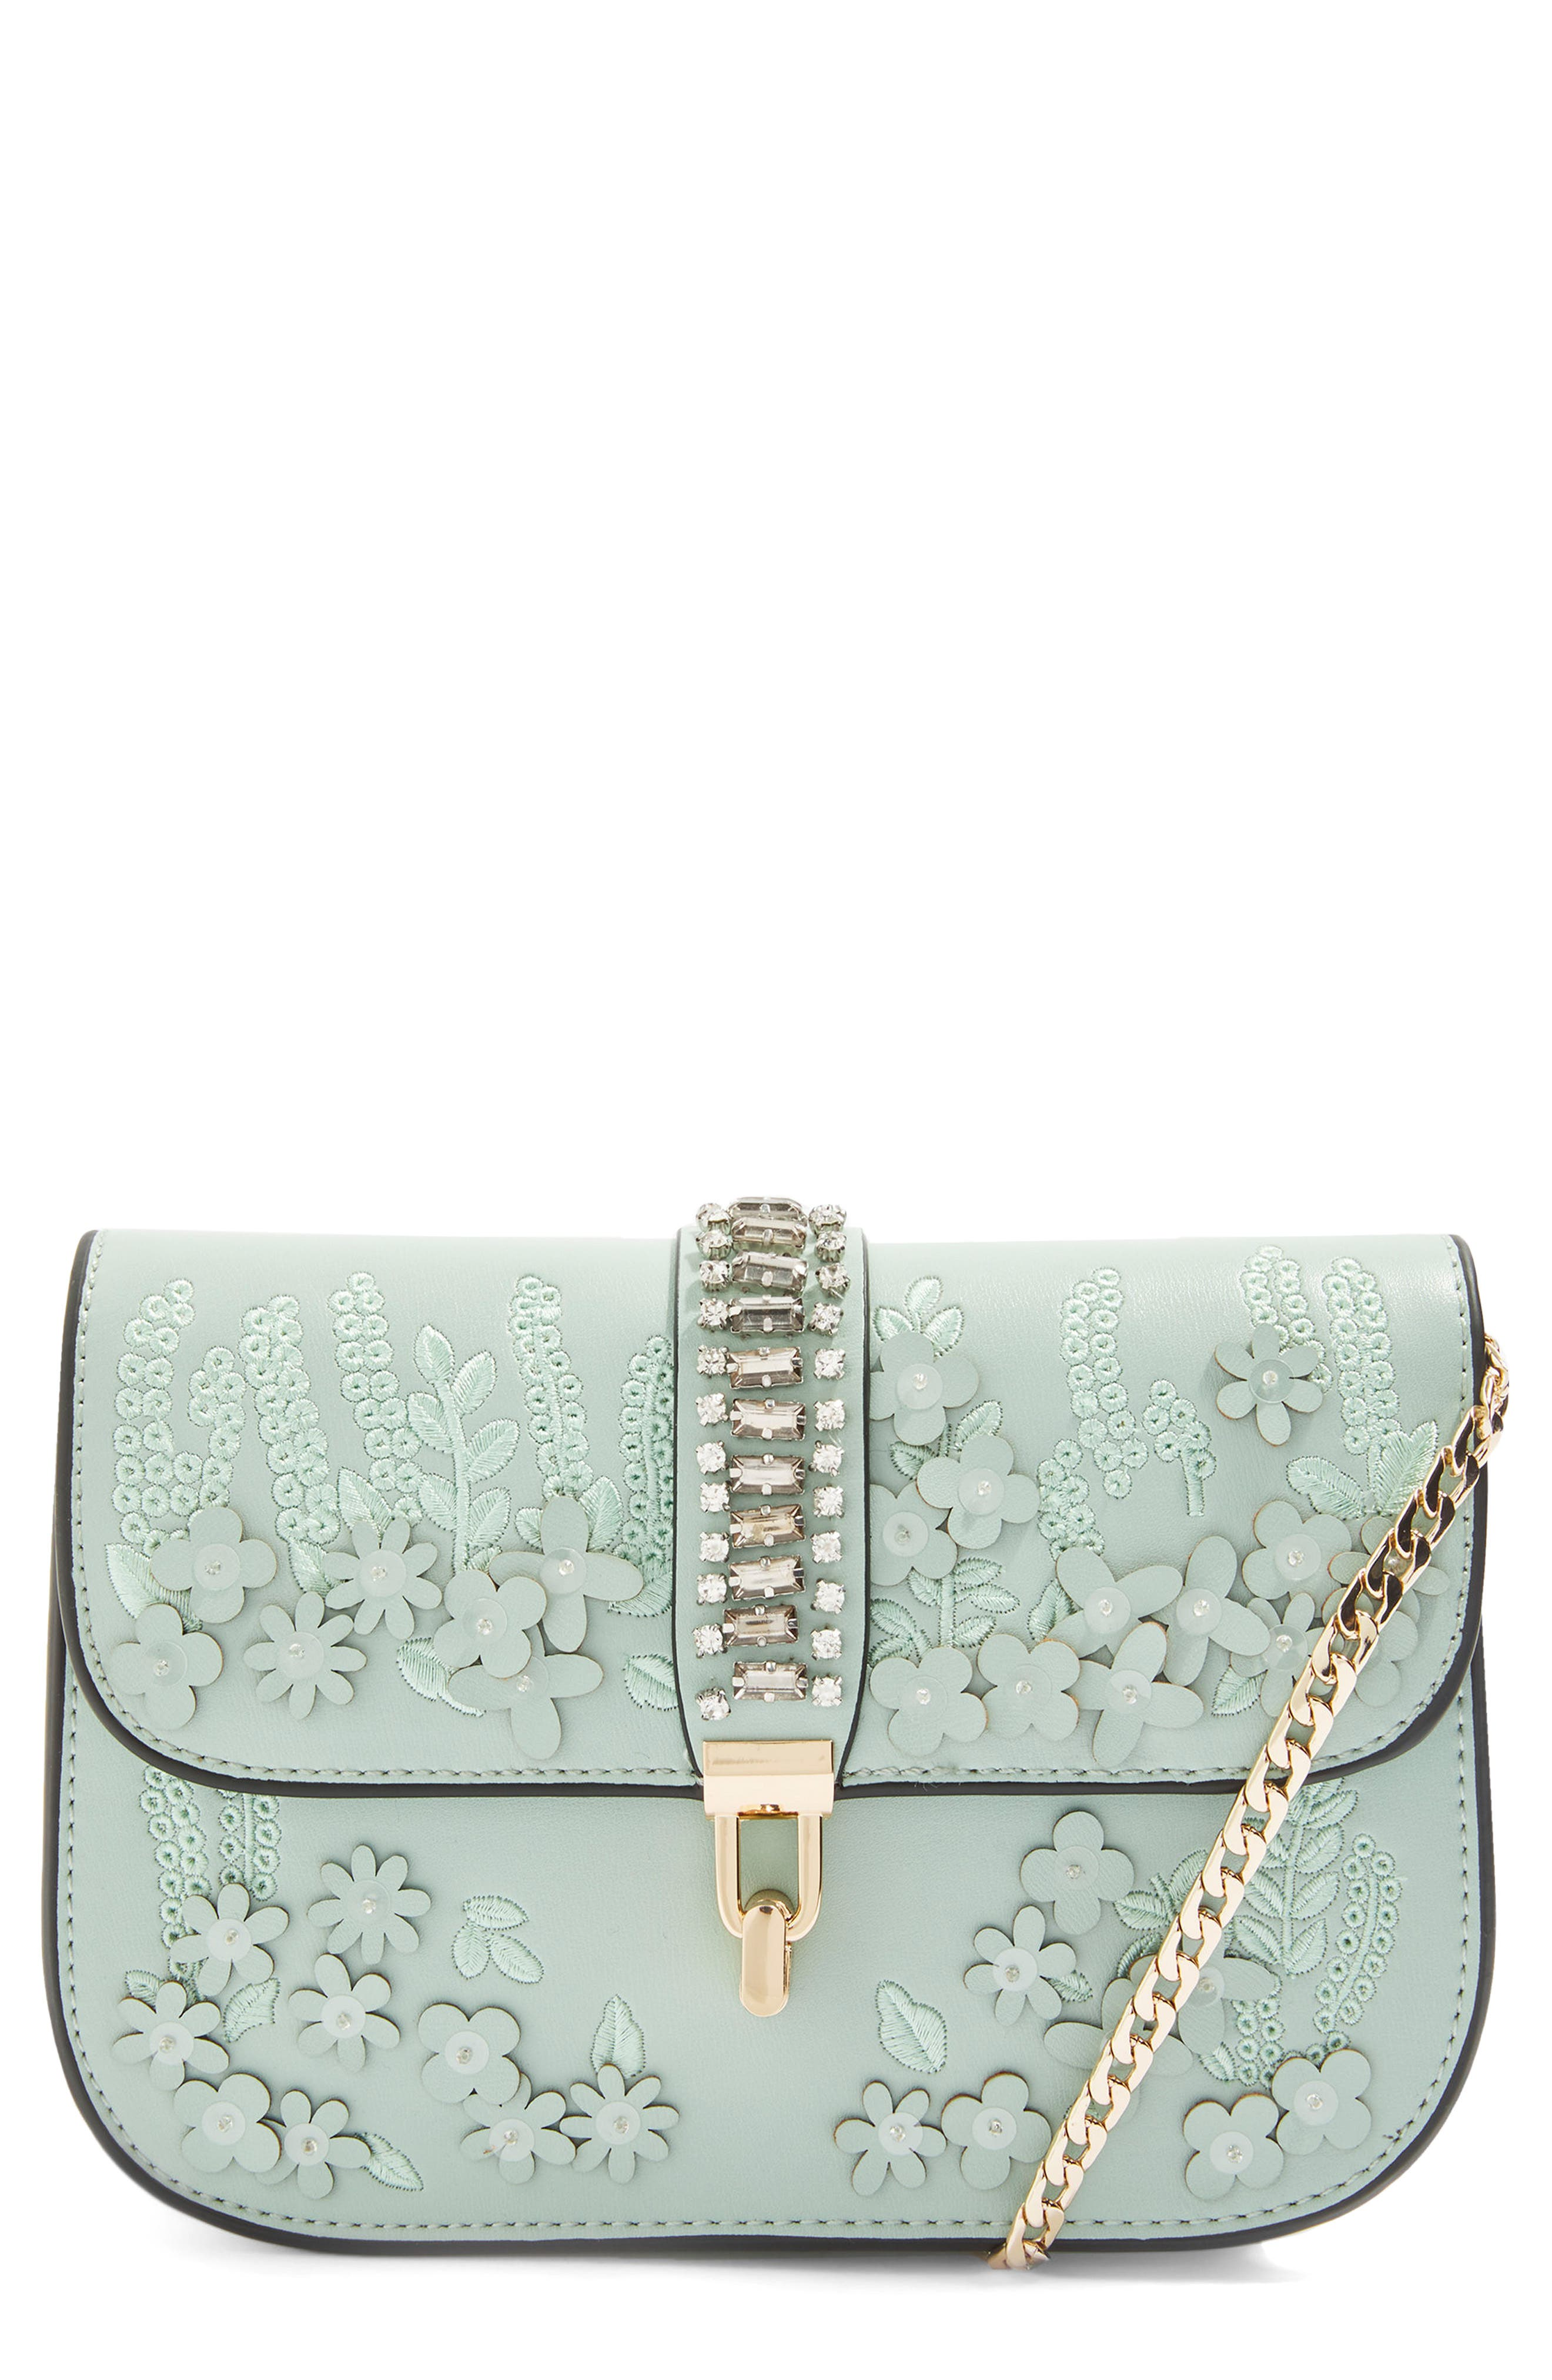 Petal 3D Flower Embroidered Crossbody Bag,                         Main,                         color, Mint